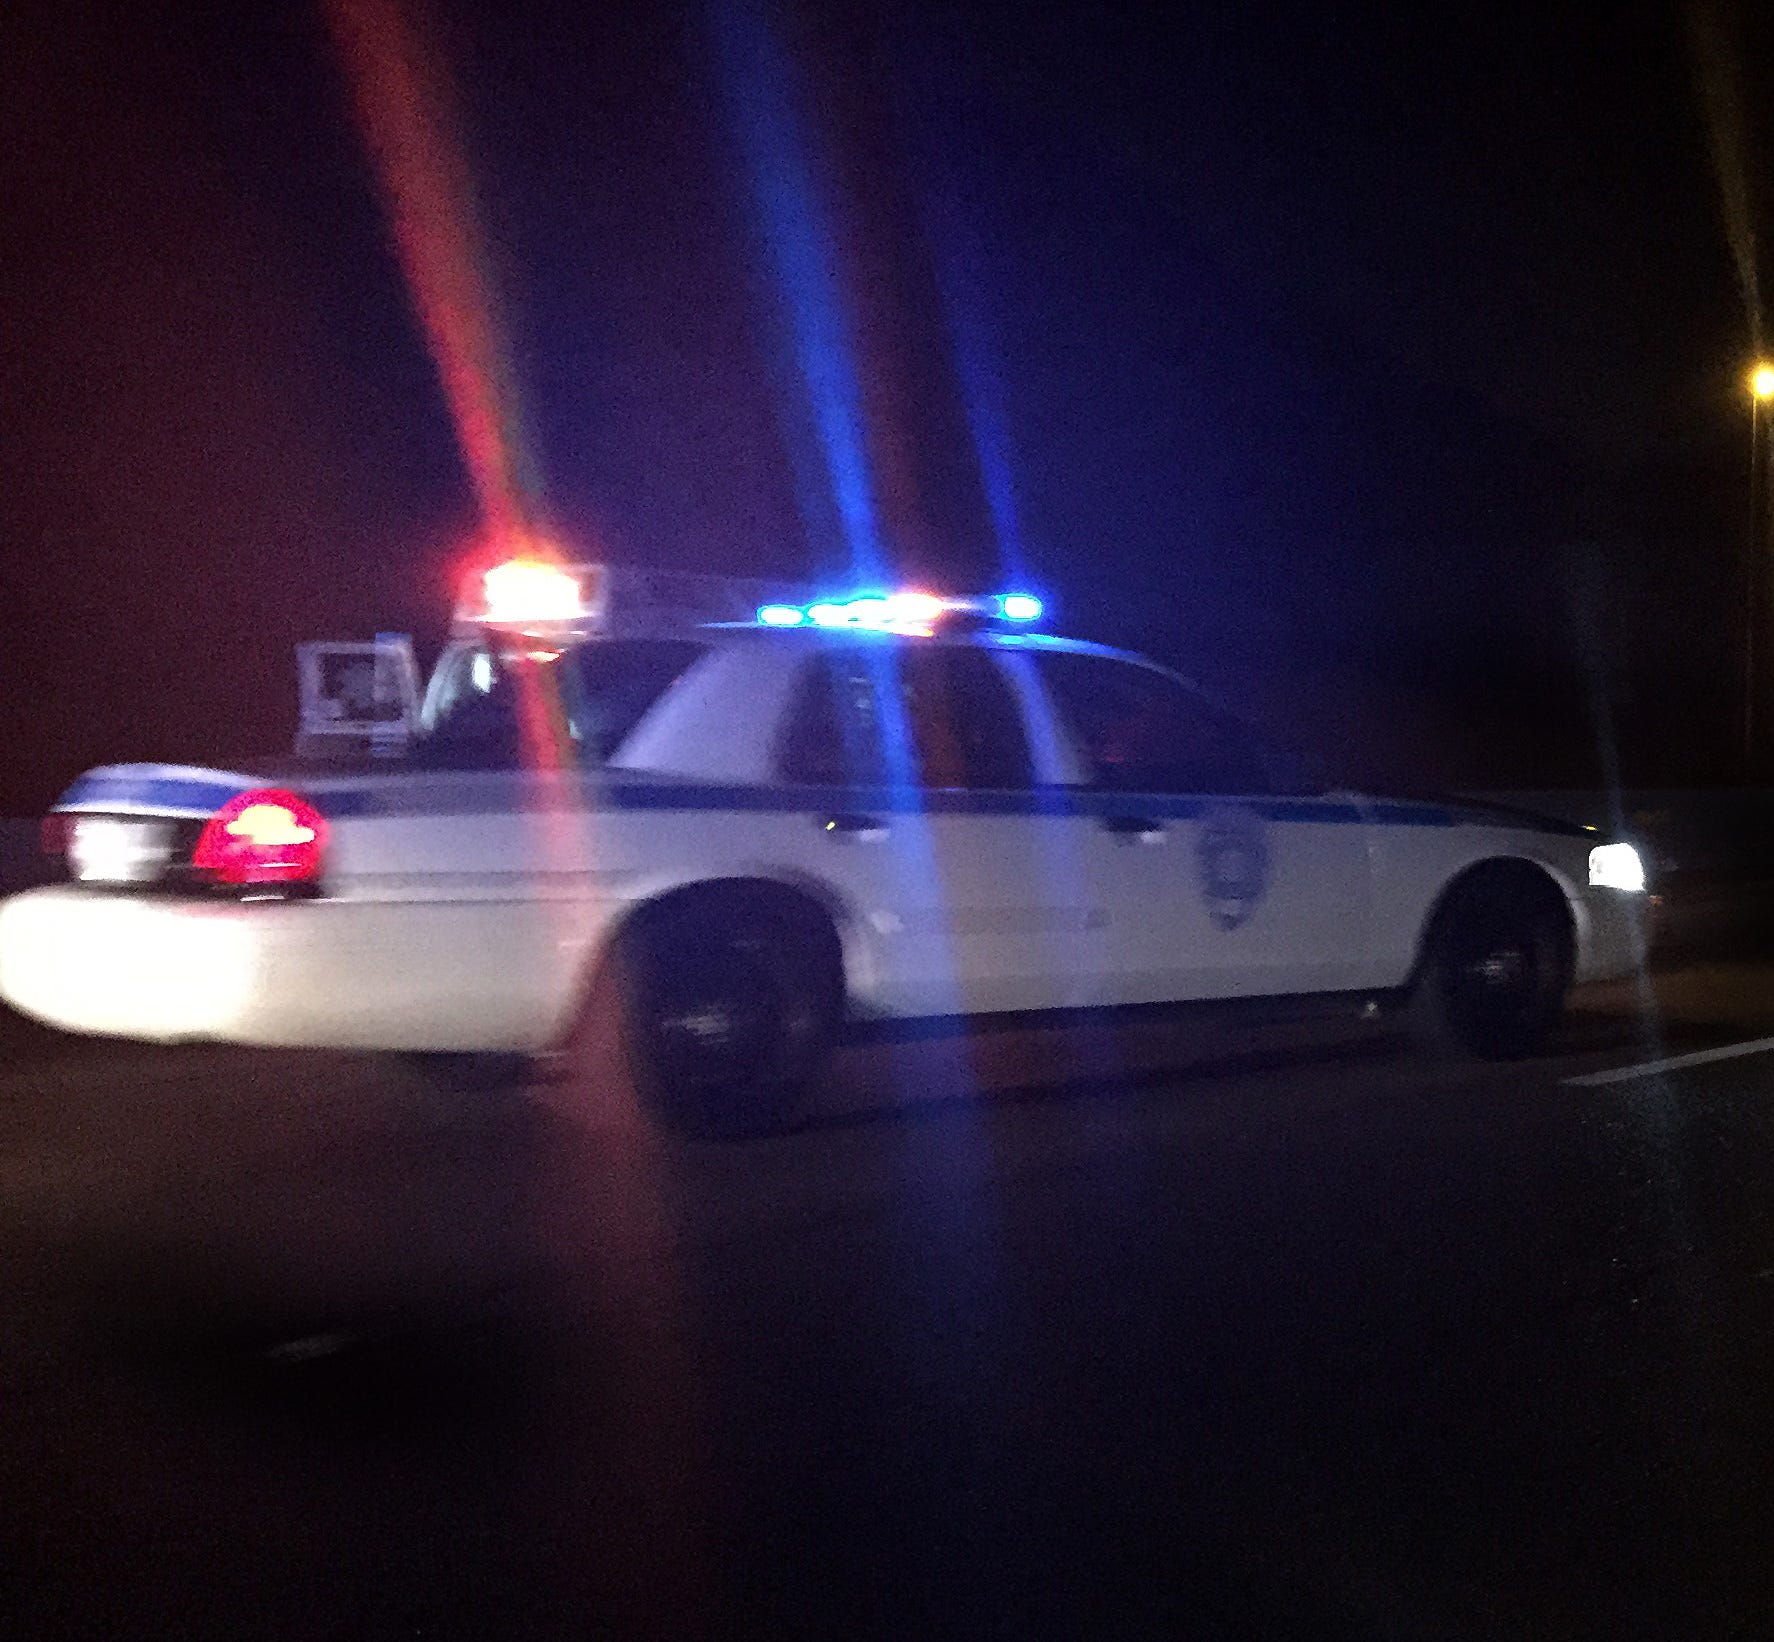 47-year-old man dies from multiple stab wounds in Jackson   Clarion Ledger